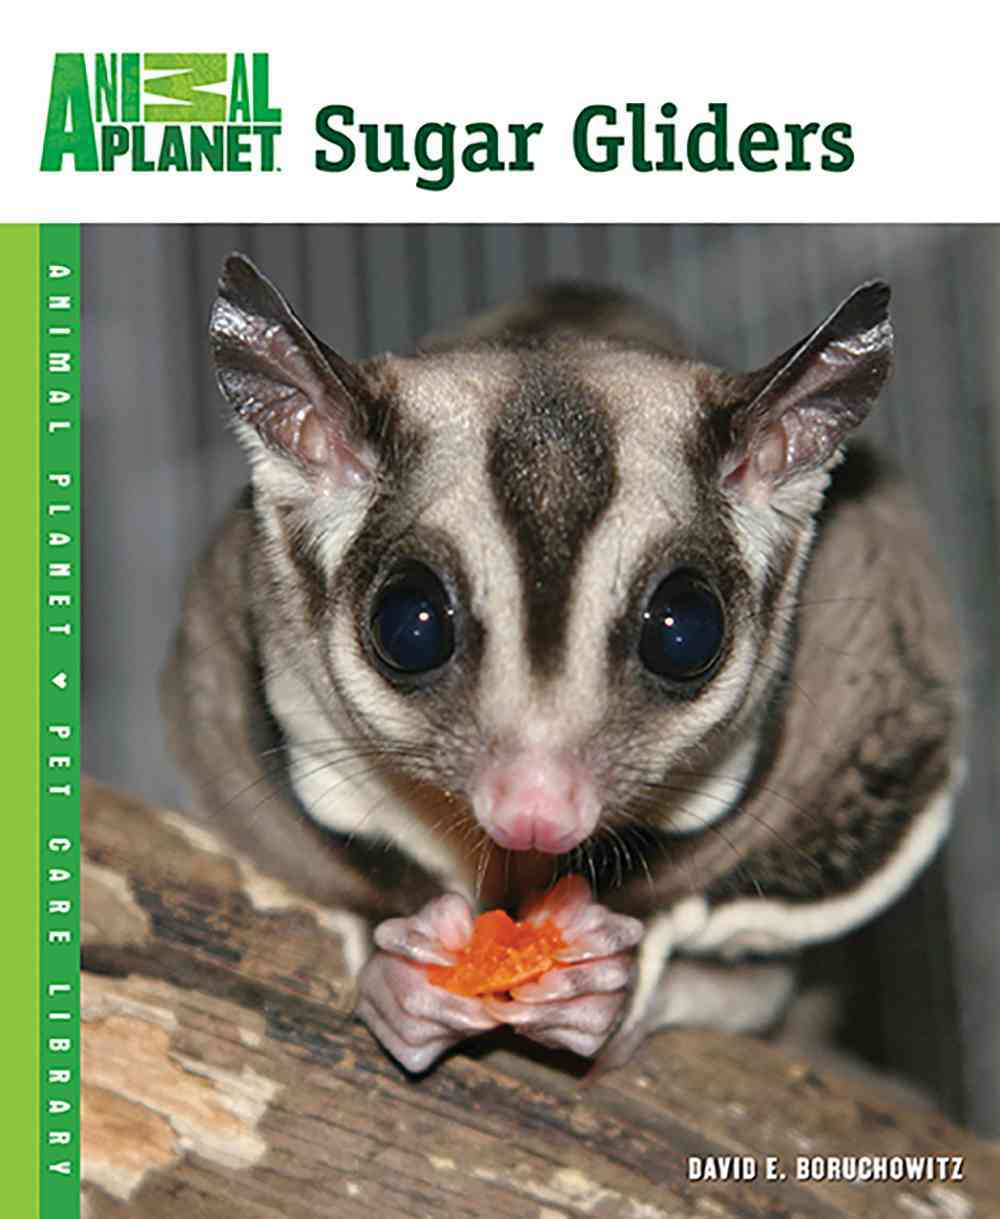 Sugar Gliders By Boruchowitz, David E.